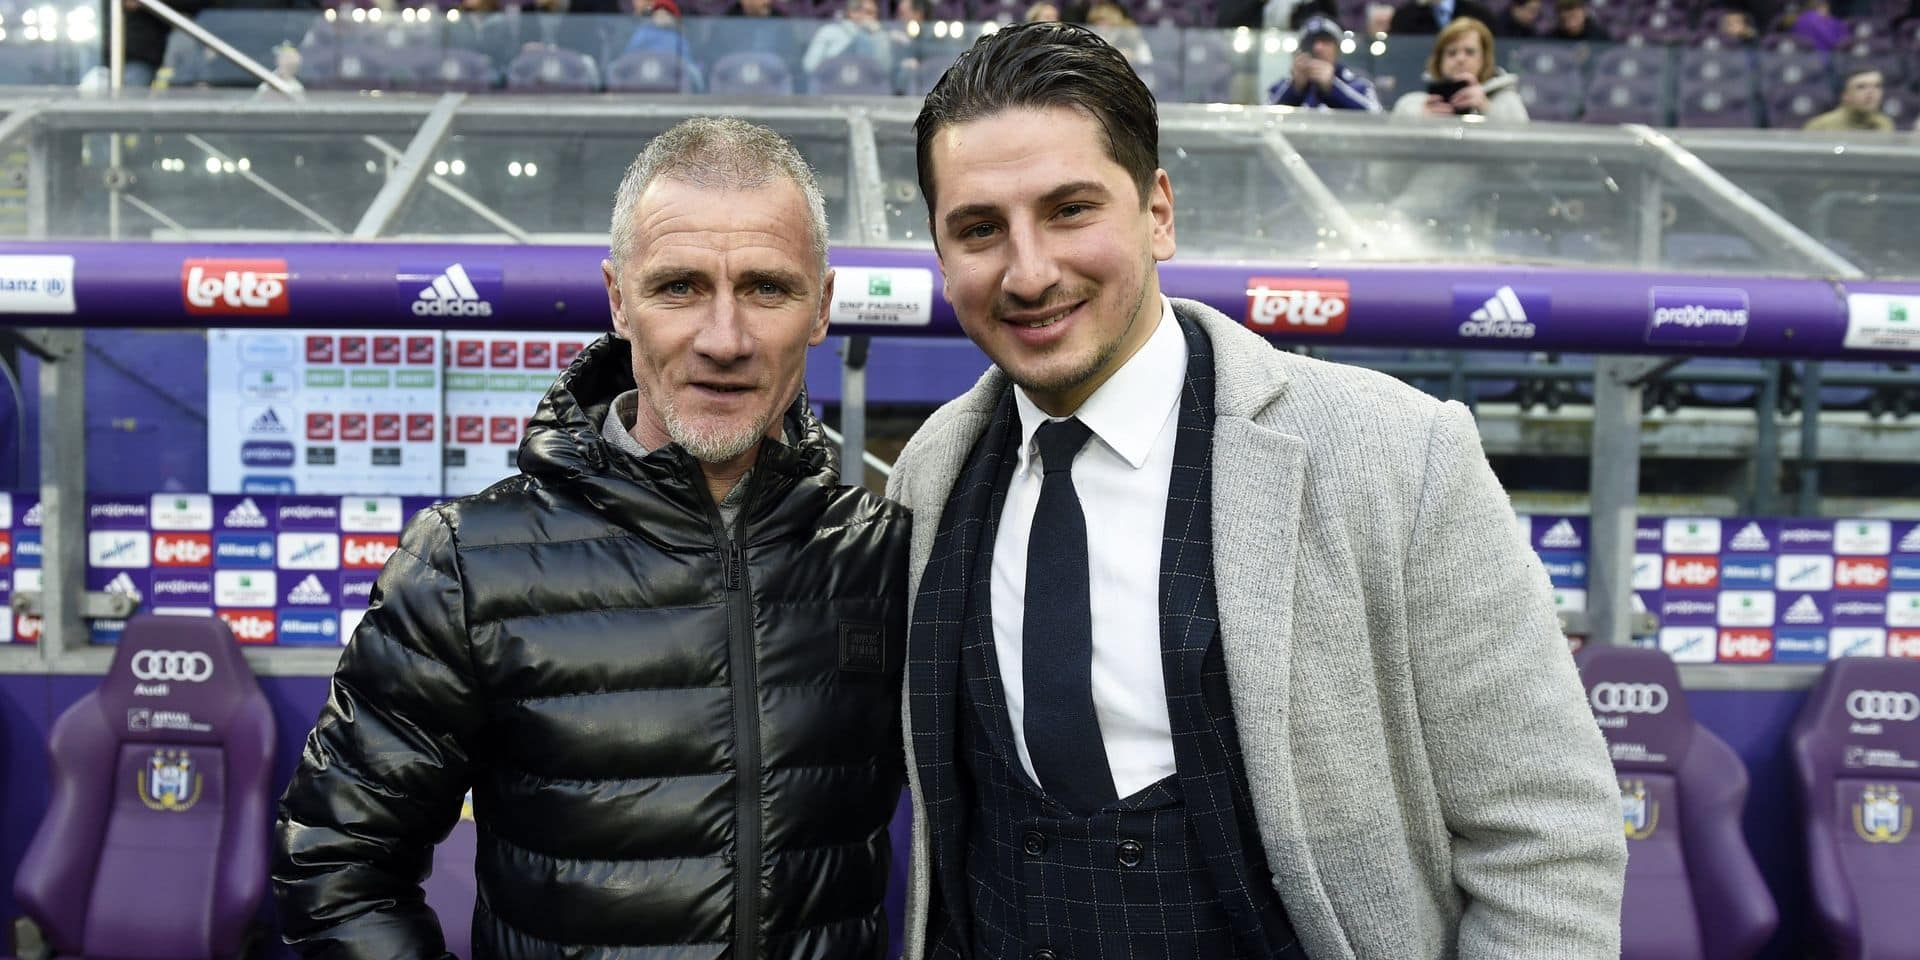 ANDERLECHT, BELGIUM - MARCH 10 : Danny Boffin and Yakovencko ex player rsca pictured during The Jupiler match between RSC Anderlecht KV Kortrijk in Brussels, Belgium March 10, 2019 in Anderlecht, Belgium, 10/03/19 ( Photo by Philippe Crochet / Photonews